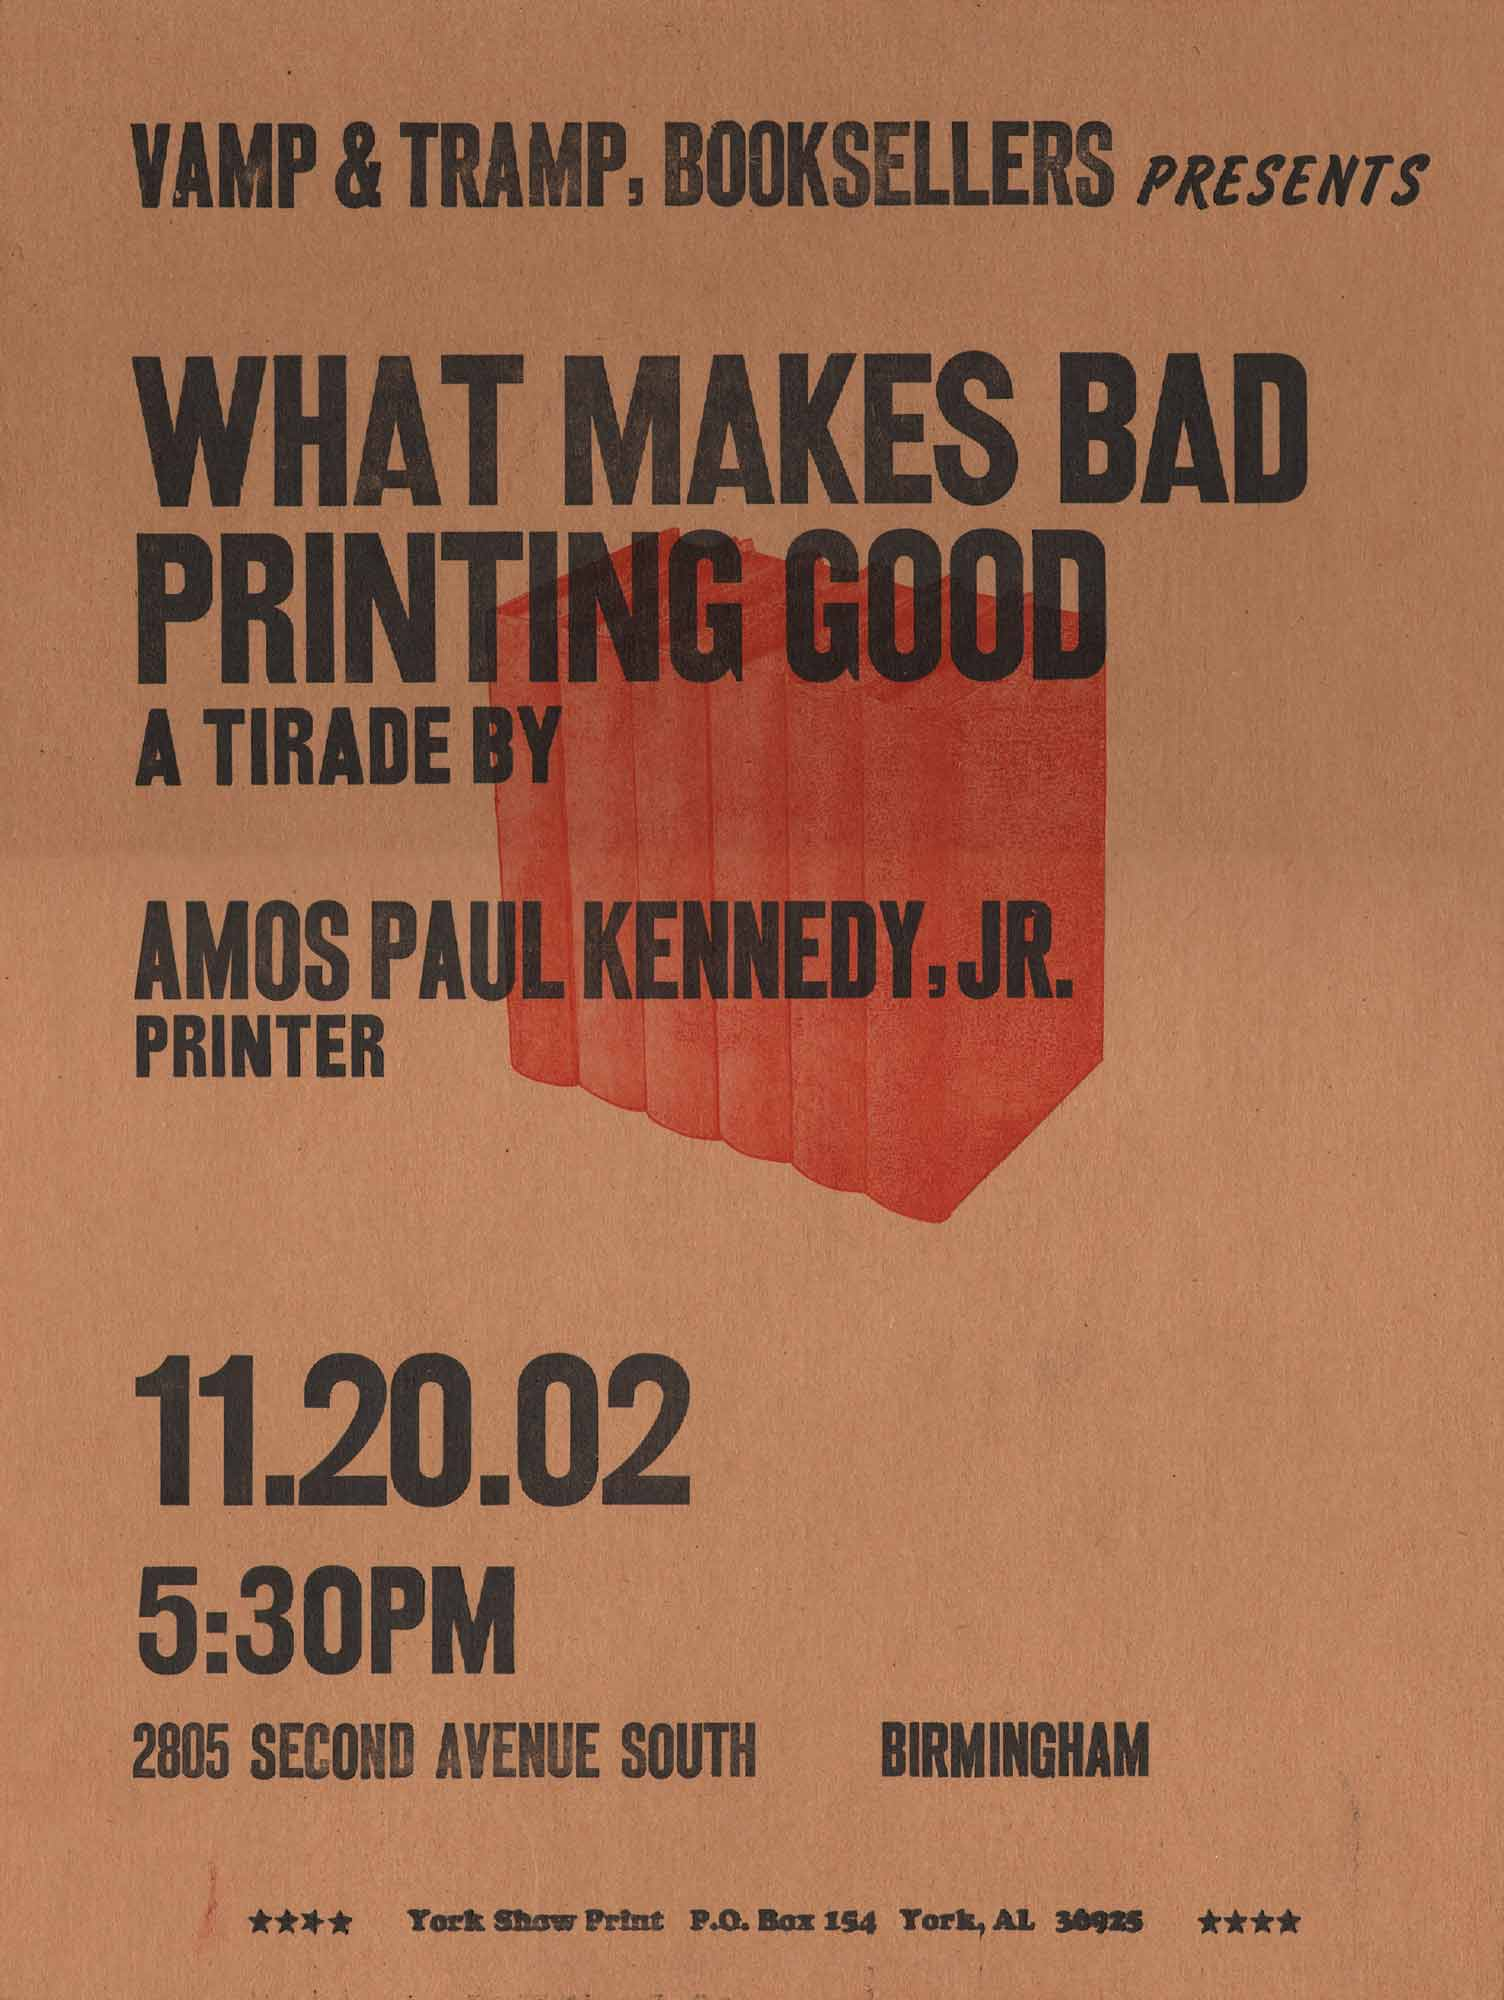 image of broadside: Vamp and Tramp, Booksellers presents: What Makes Bad Printing Good: a tirade by Amos Paul Kennedy, Jr., Printer. 11/20/2002 at 5:30 p.m.. 2805 Second Avenue South, Bermingham. York Show Print, P.O. Box 154 Tork, AL 36925.